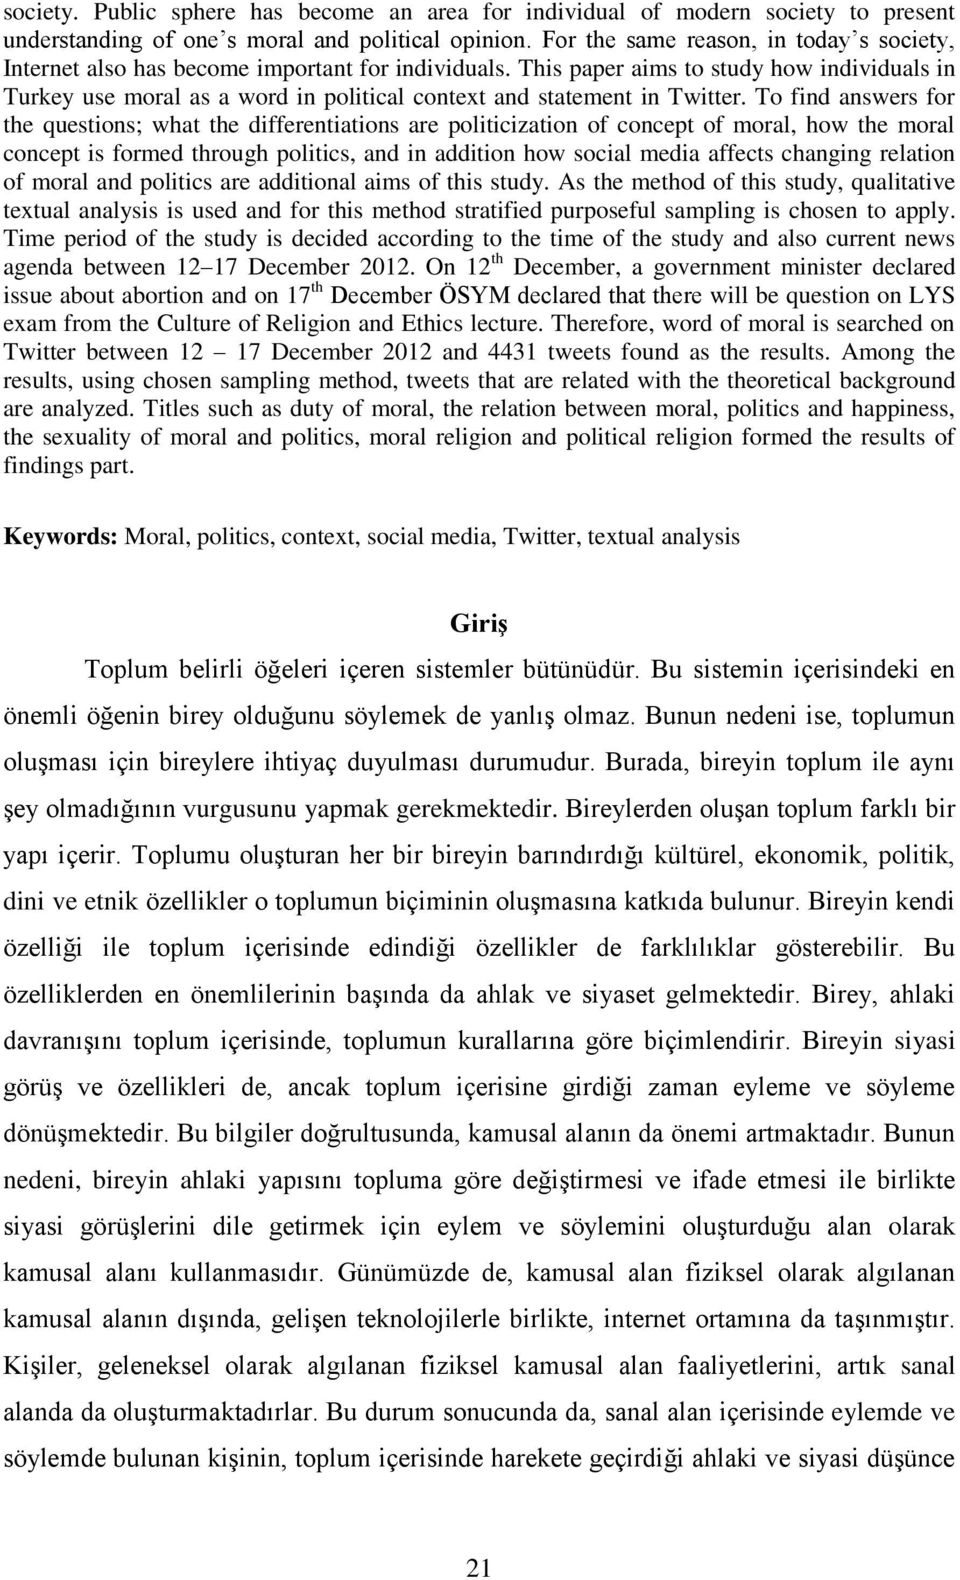 This paper aims to study how individuals in Turkey use moral as a word in political context and statement in Twitter.